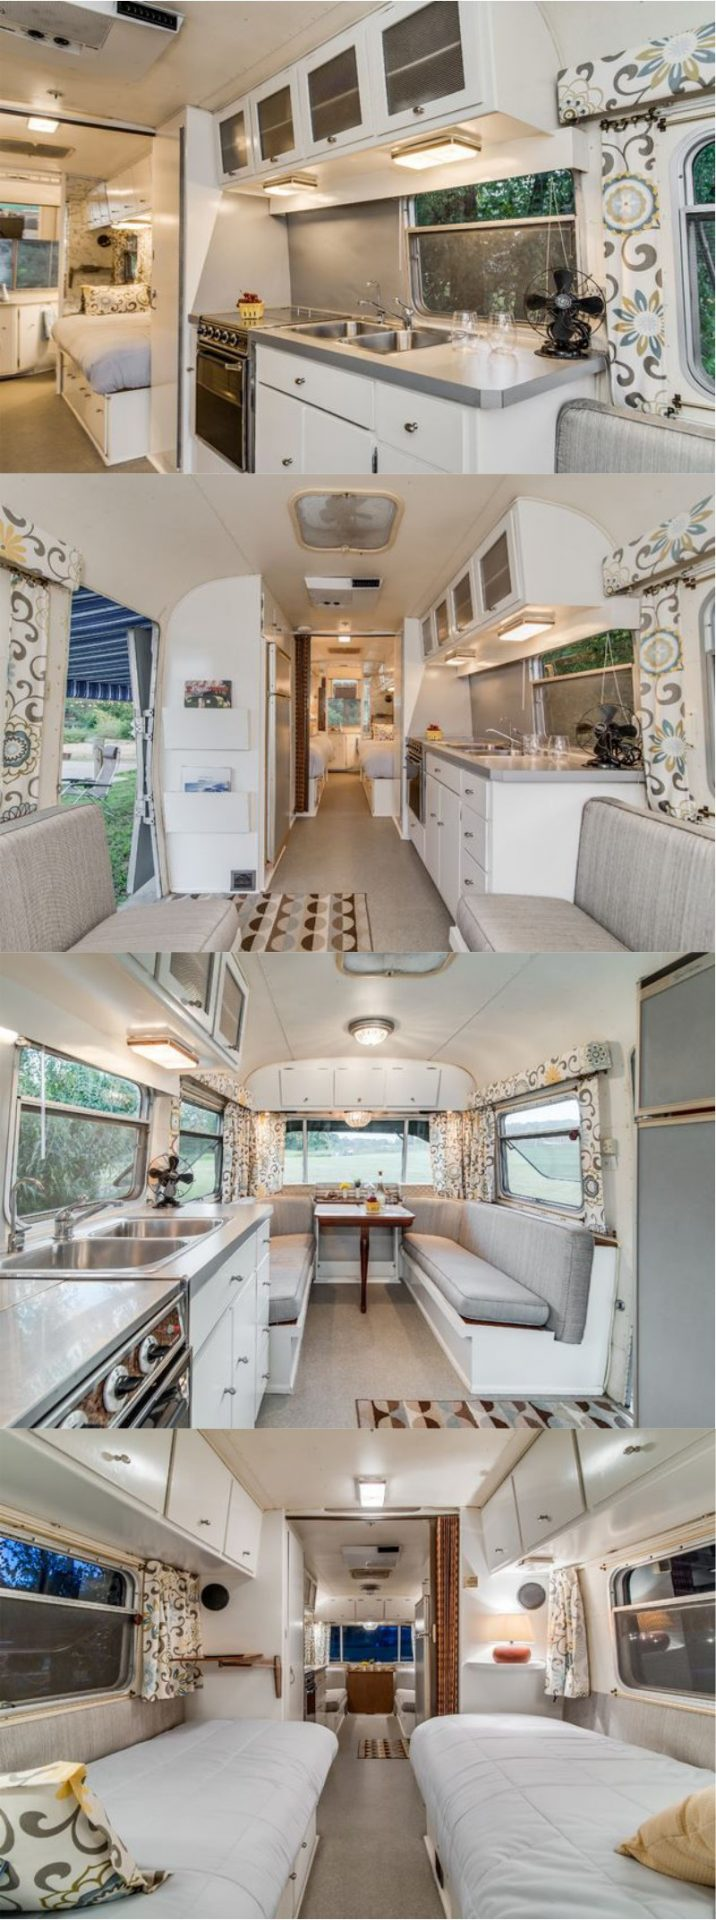 RV kitchen storage ideas